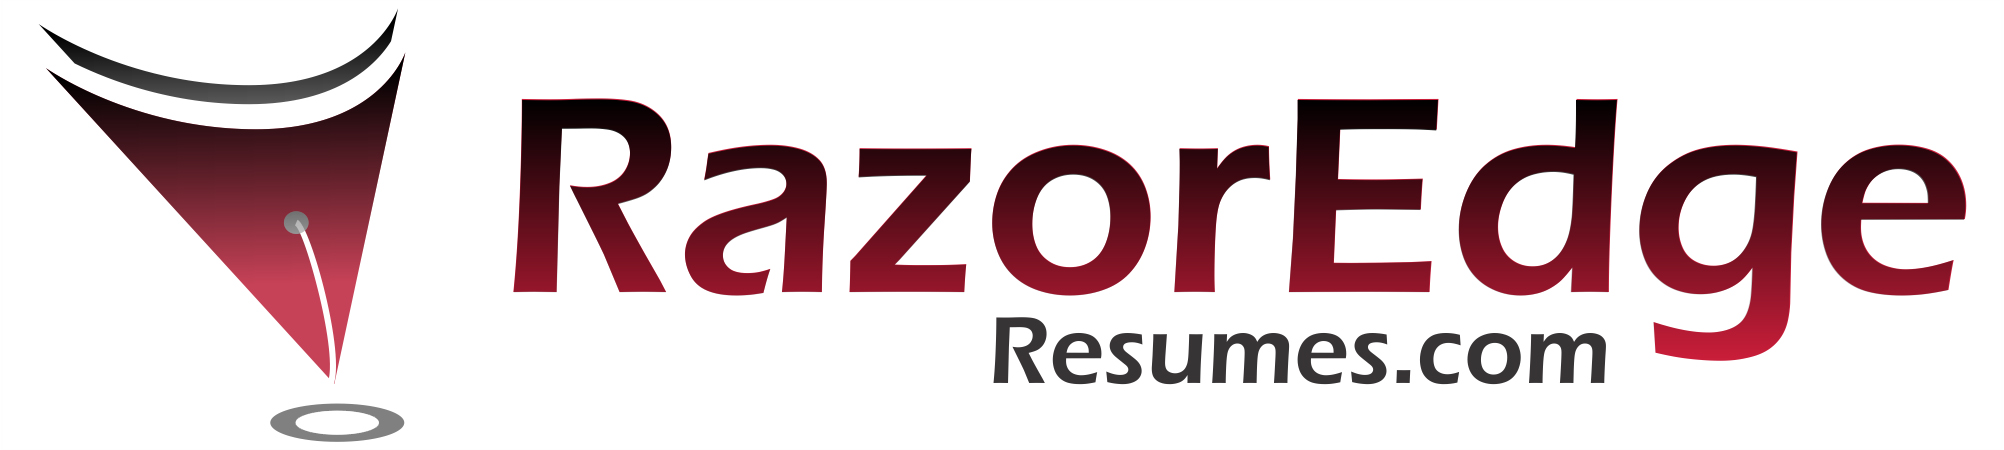 Resume Services Creating Perfect Resumes For Motivated Job Seekers